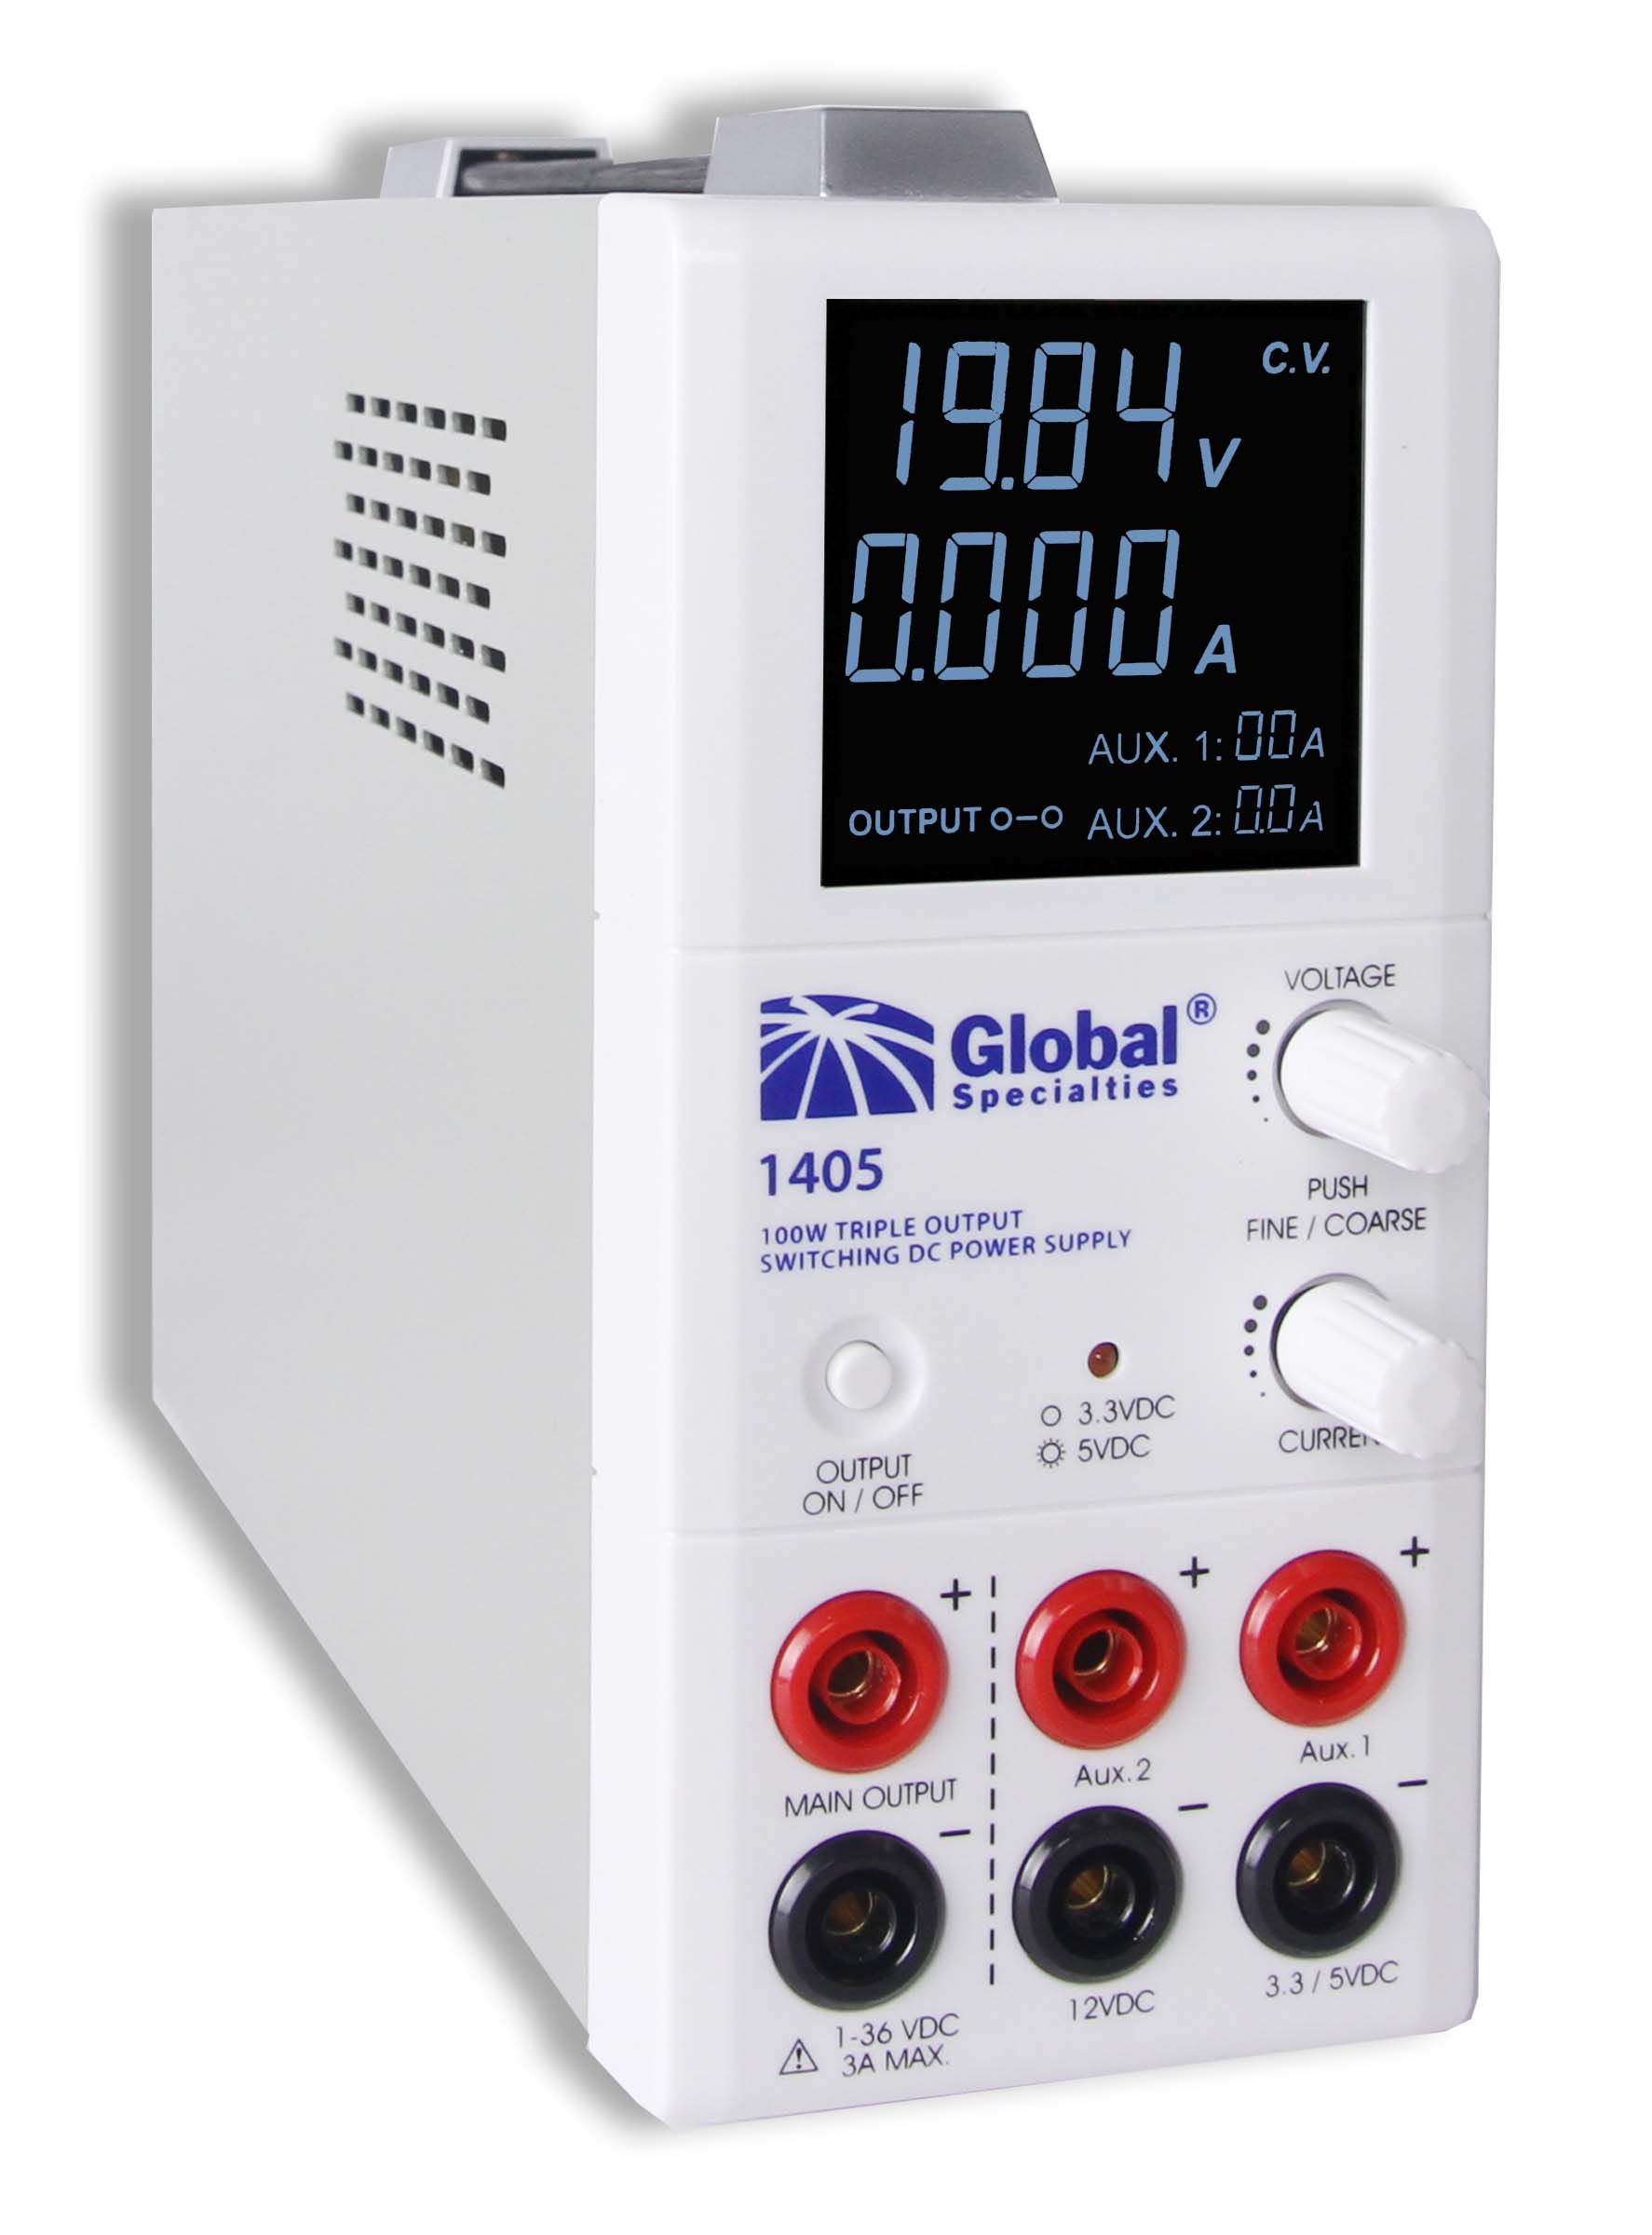 Global Specialties 1405 Triple Output Switching DC Power Supply: 1-36 VDC, 0-3 A & 3.3/5 VDC, 2 A & 12 V, 1 A Photo